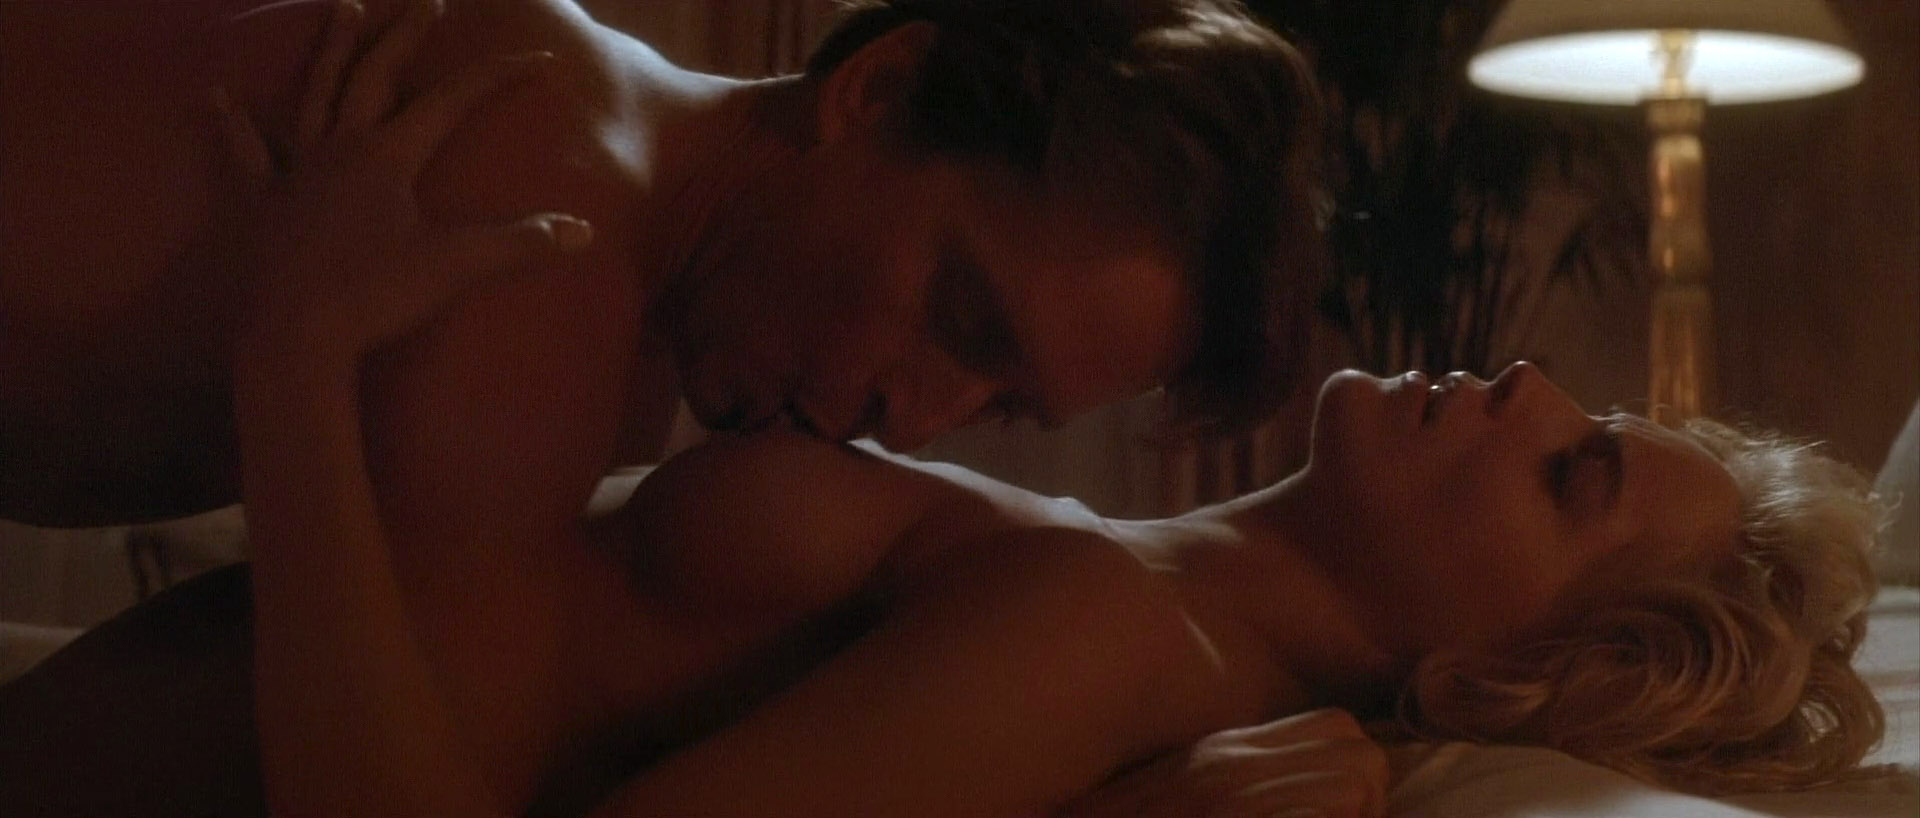 Jeanne tripplehorn basic instinct unrated cut